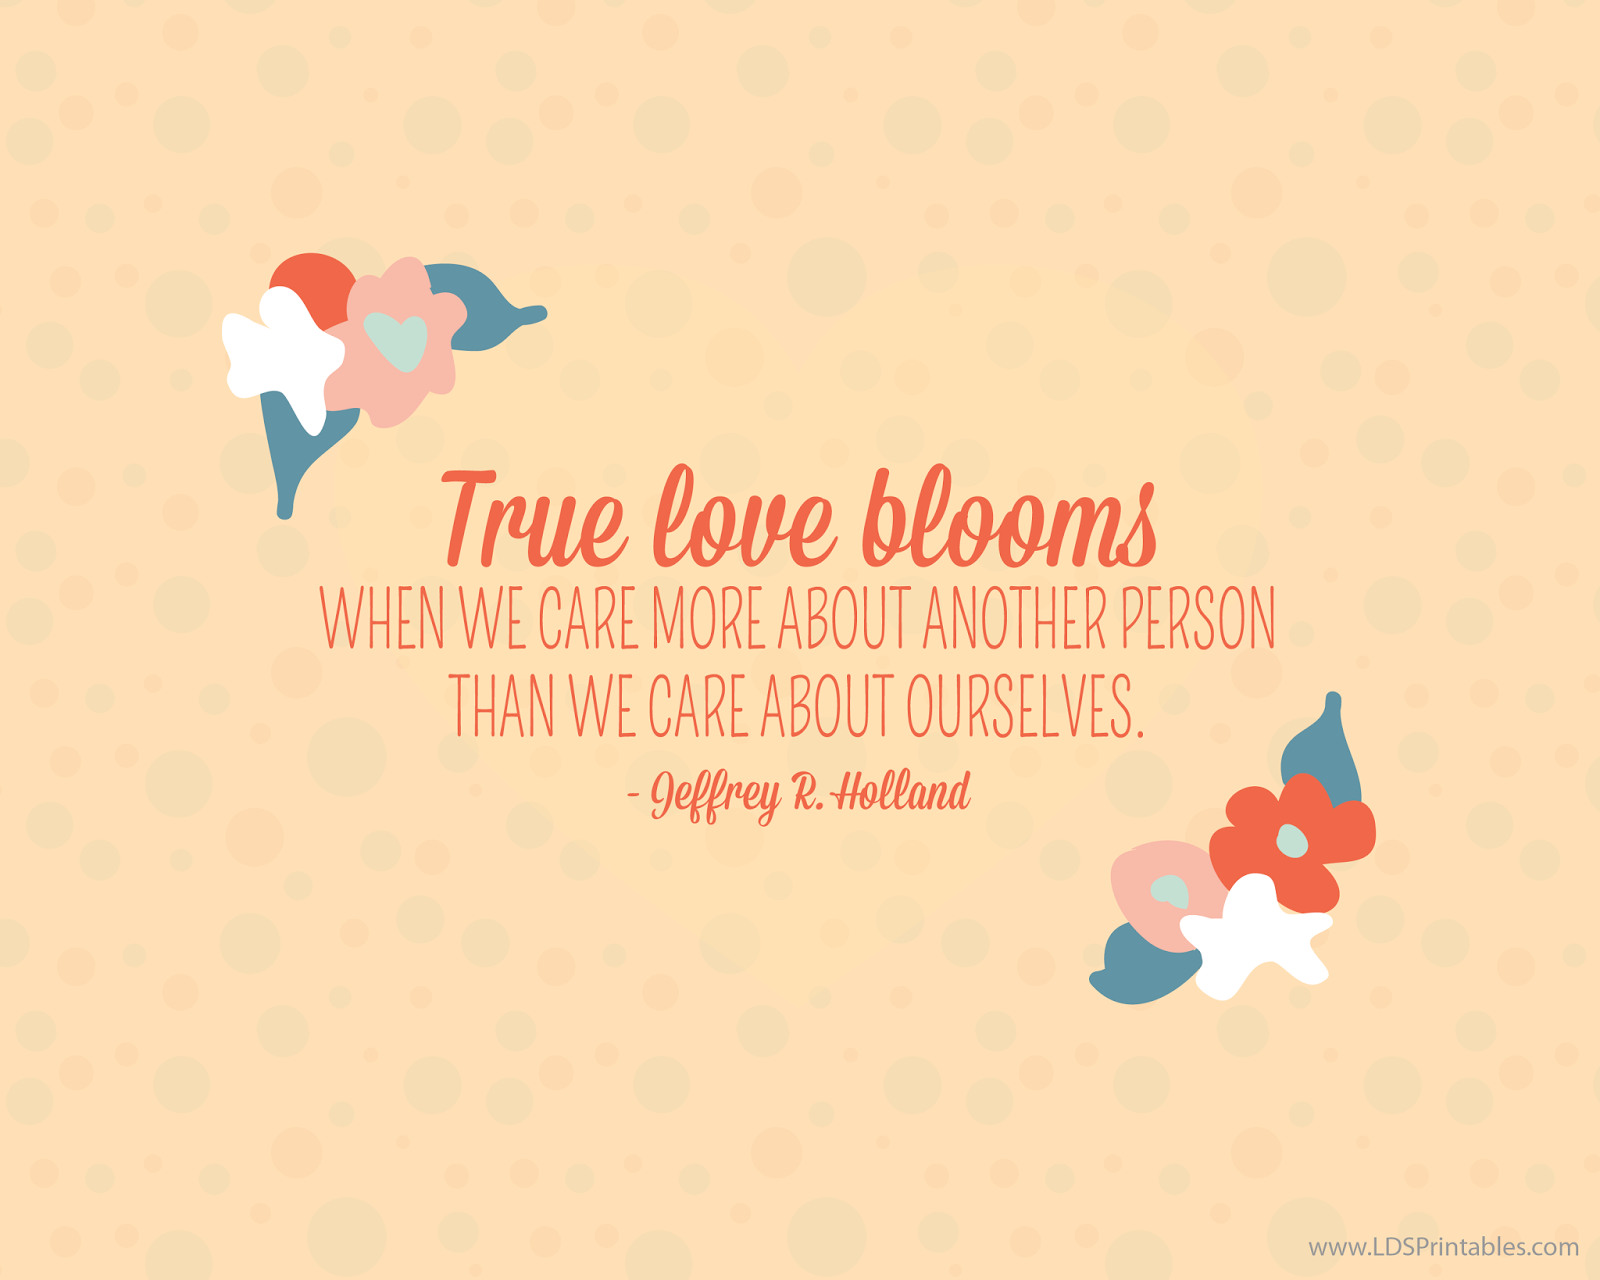 Quotes About Love Lds : lds quotes uplifting quotes inspirational quotes holland quotes quotes ...